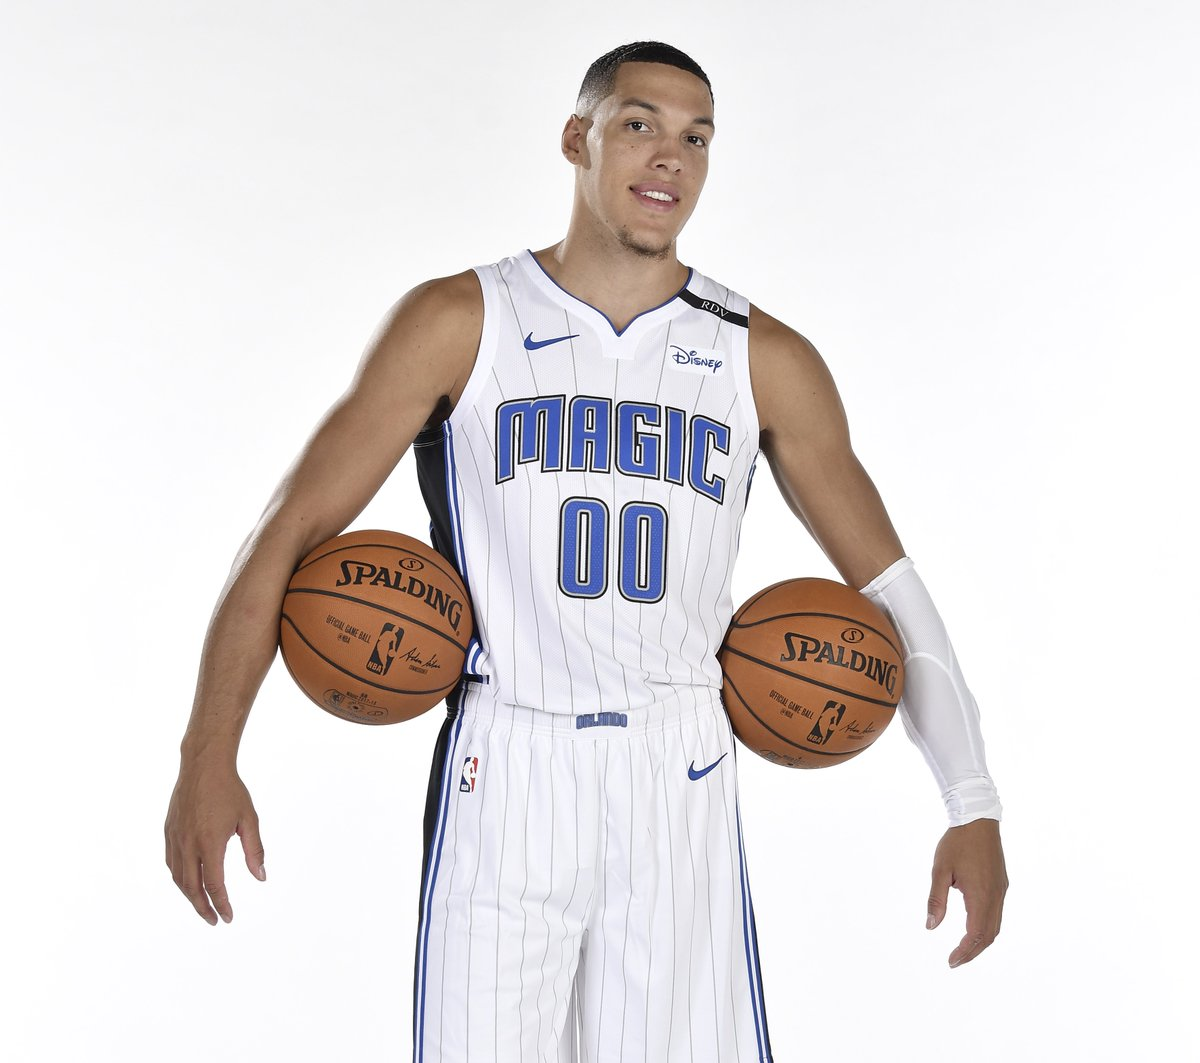 Join us in wishing Double0AG of the OrlandoMagic a HAPPY 24th BIRTHDAY! #NBABDAY  #NBA